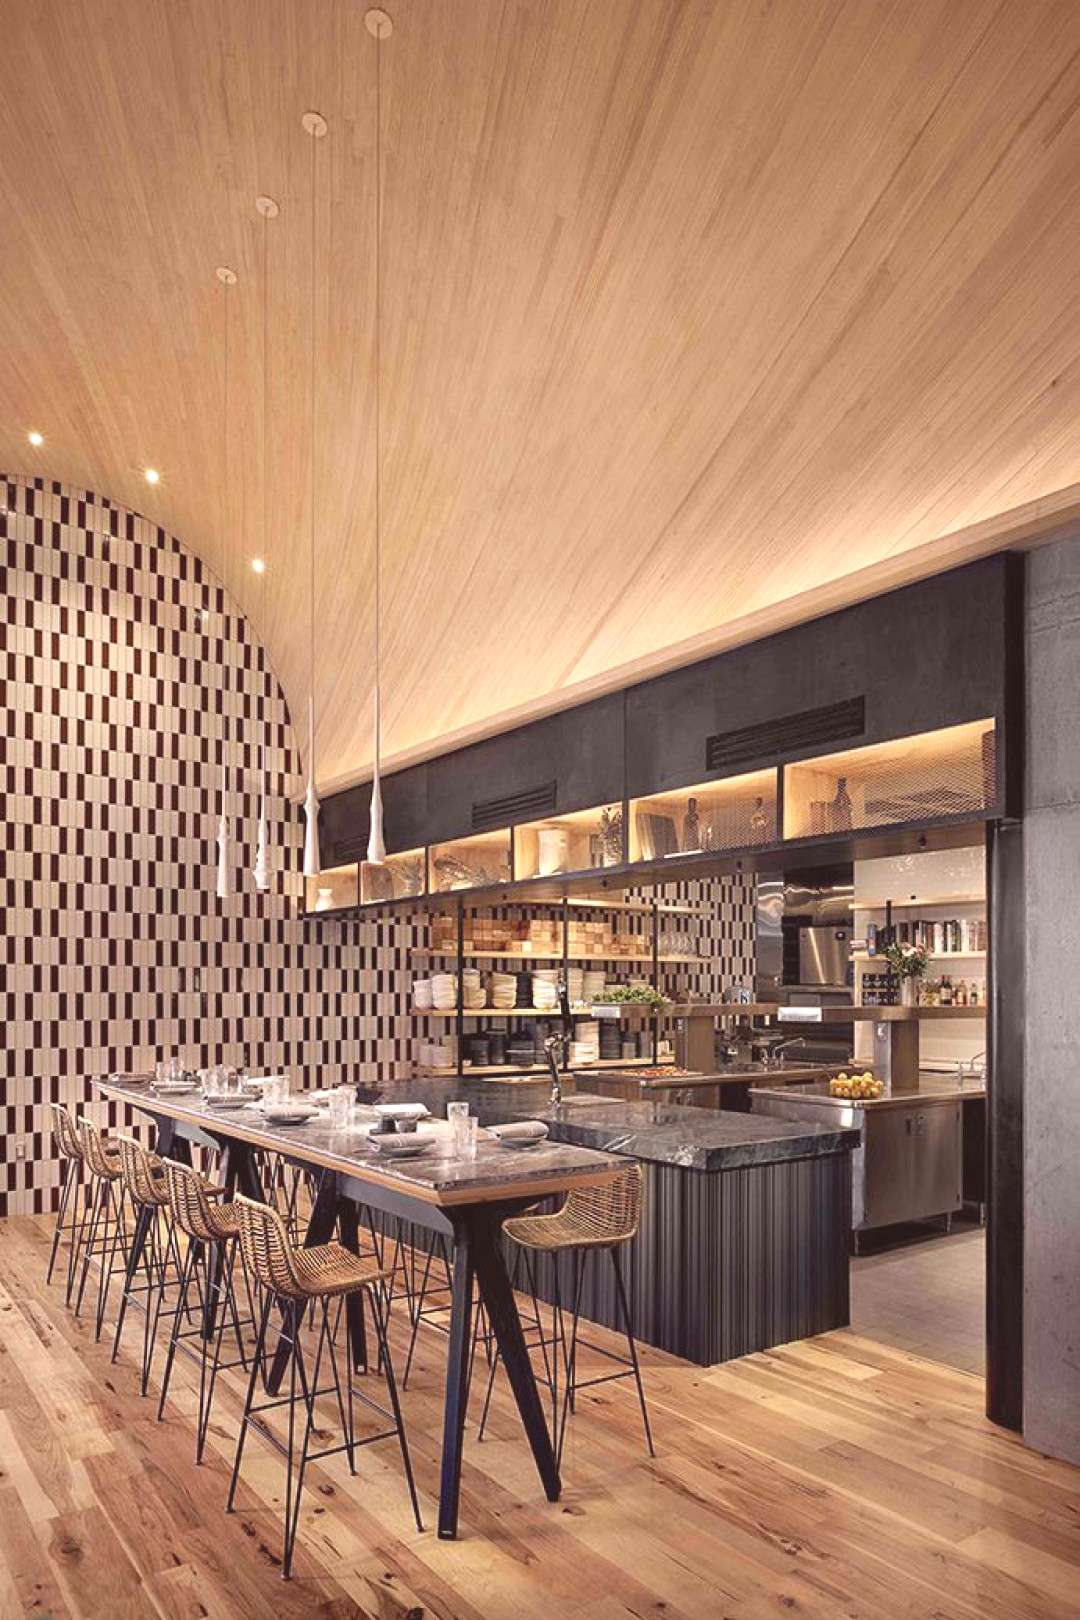 ATX Cocina, Austin, USA | vaulted ceiling of hemlock and pine arches elegantly over the open kitche